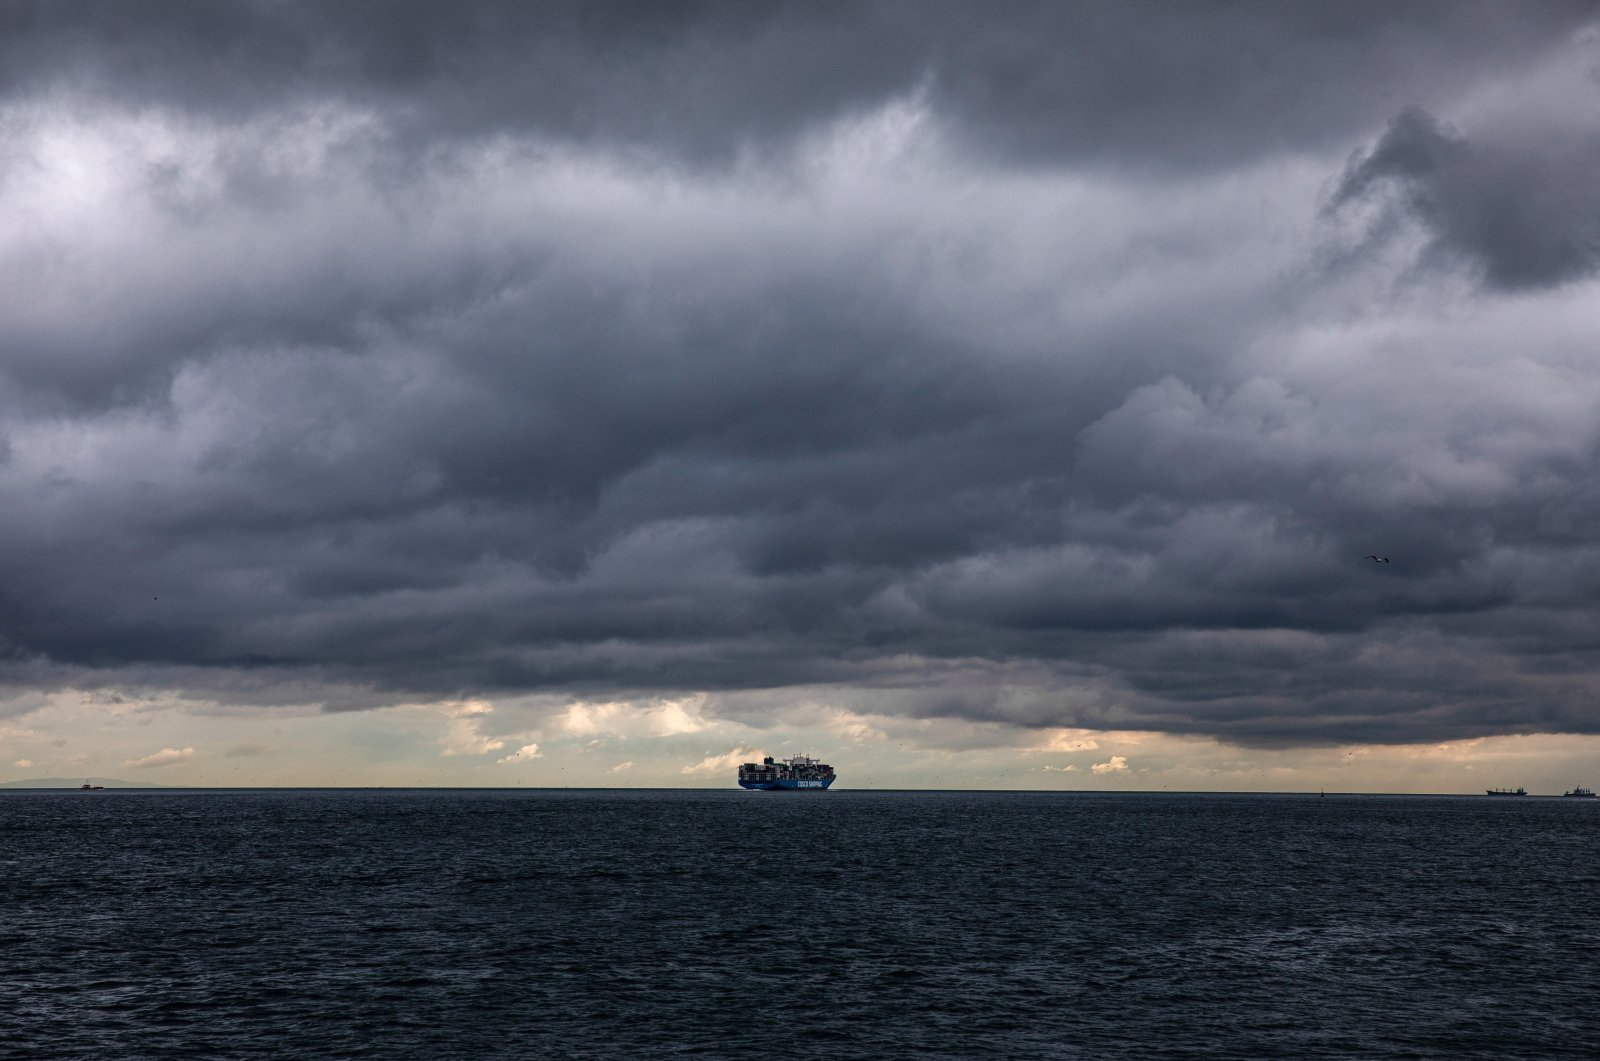 A cargo ship sails in the Marmara Sea on a cloudy day, Istanbul, Turkey, May 21, 2021. (Photo by Getty Images)